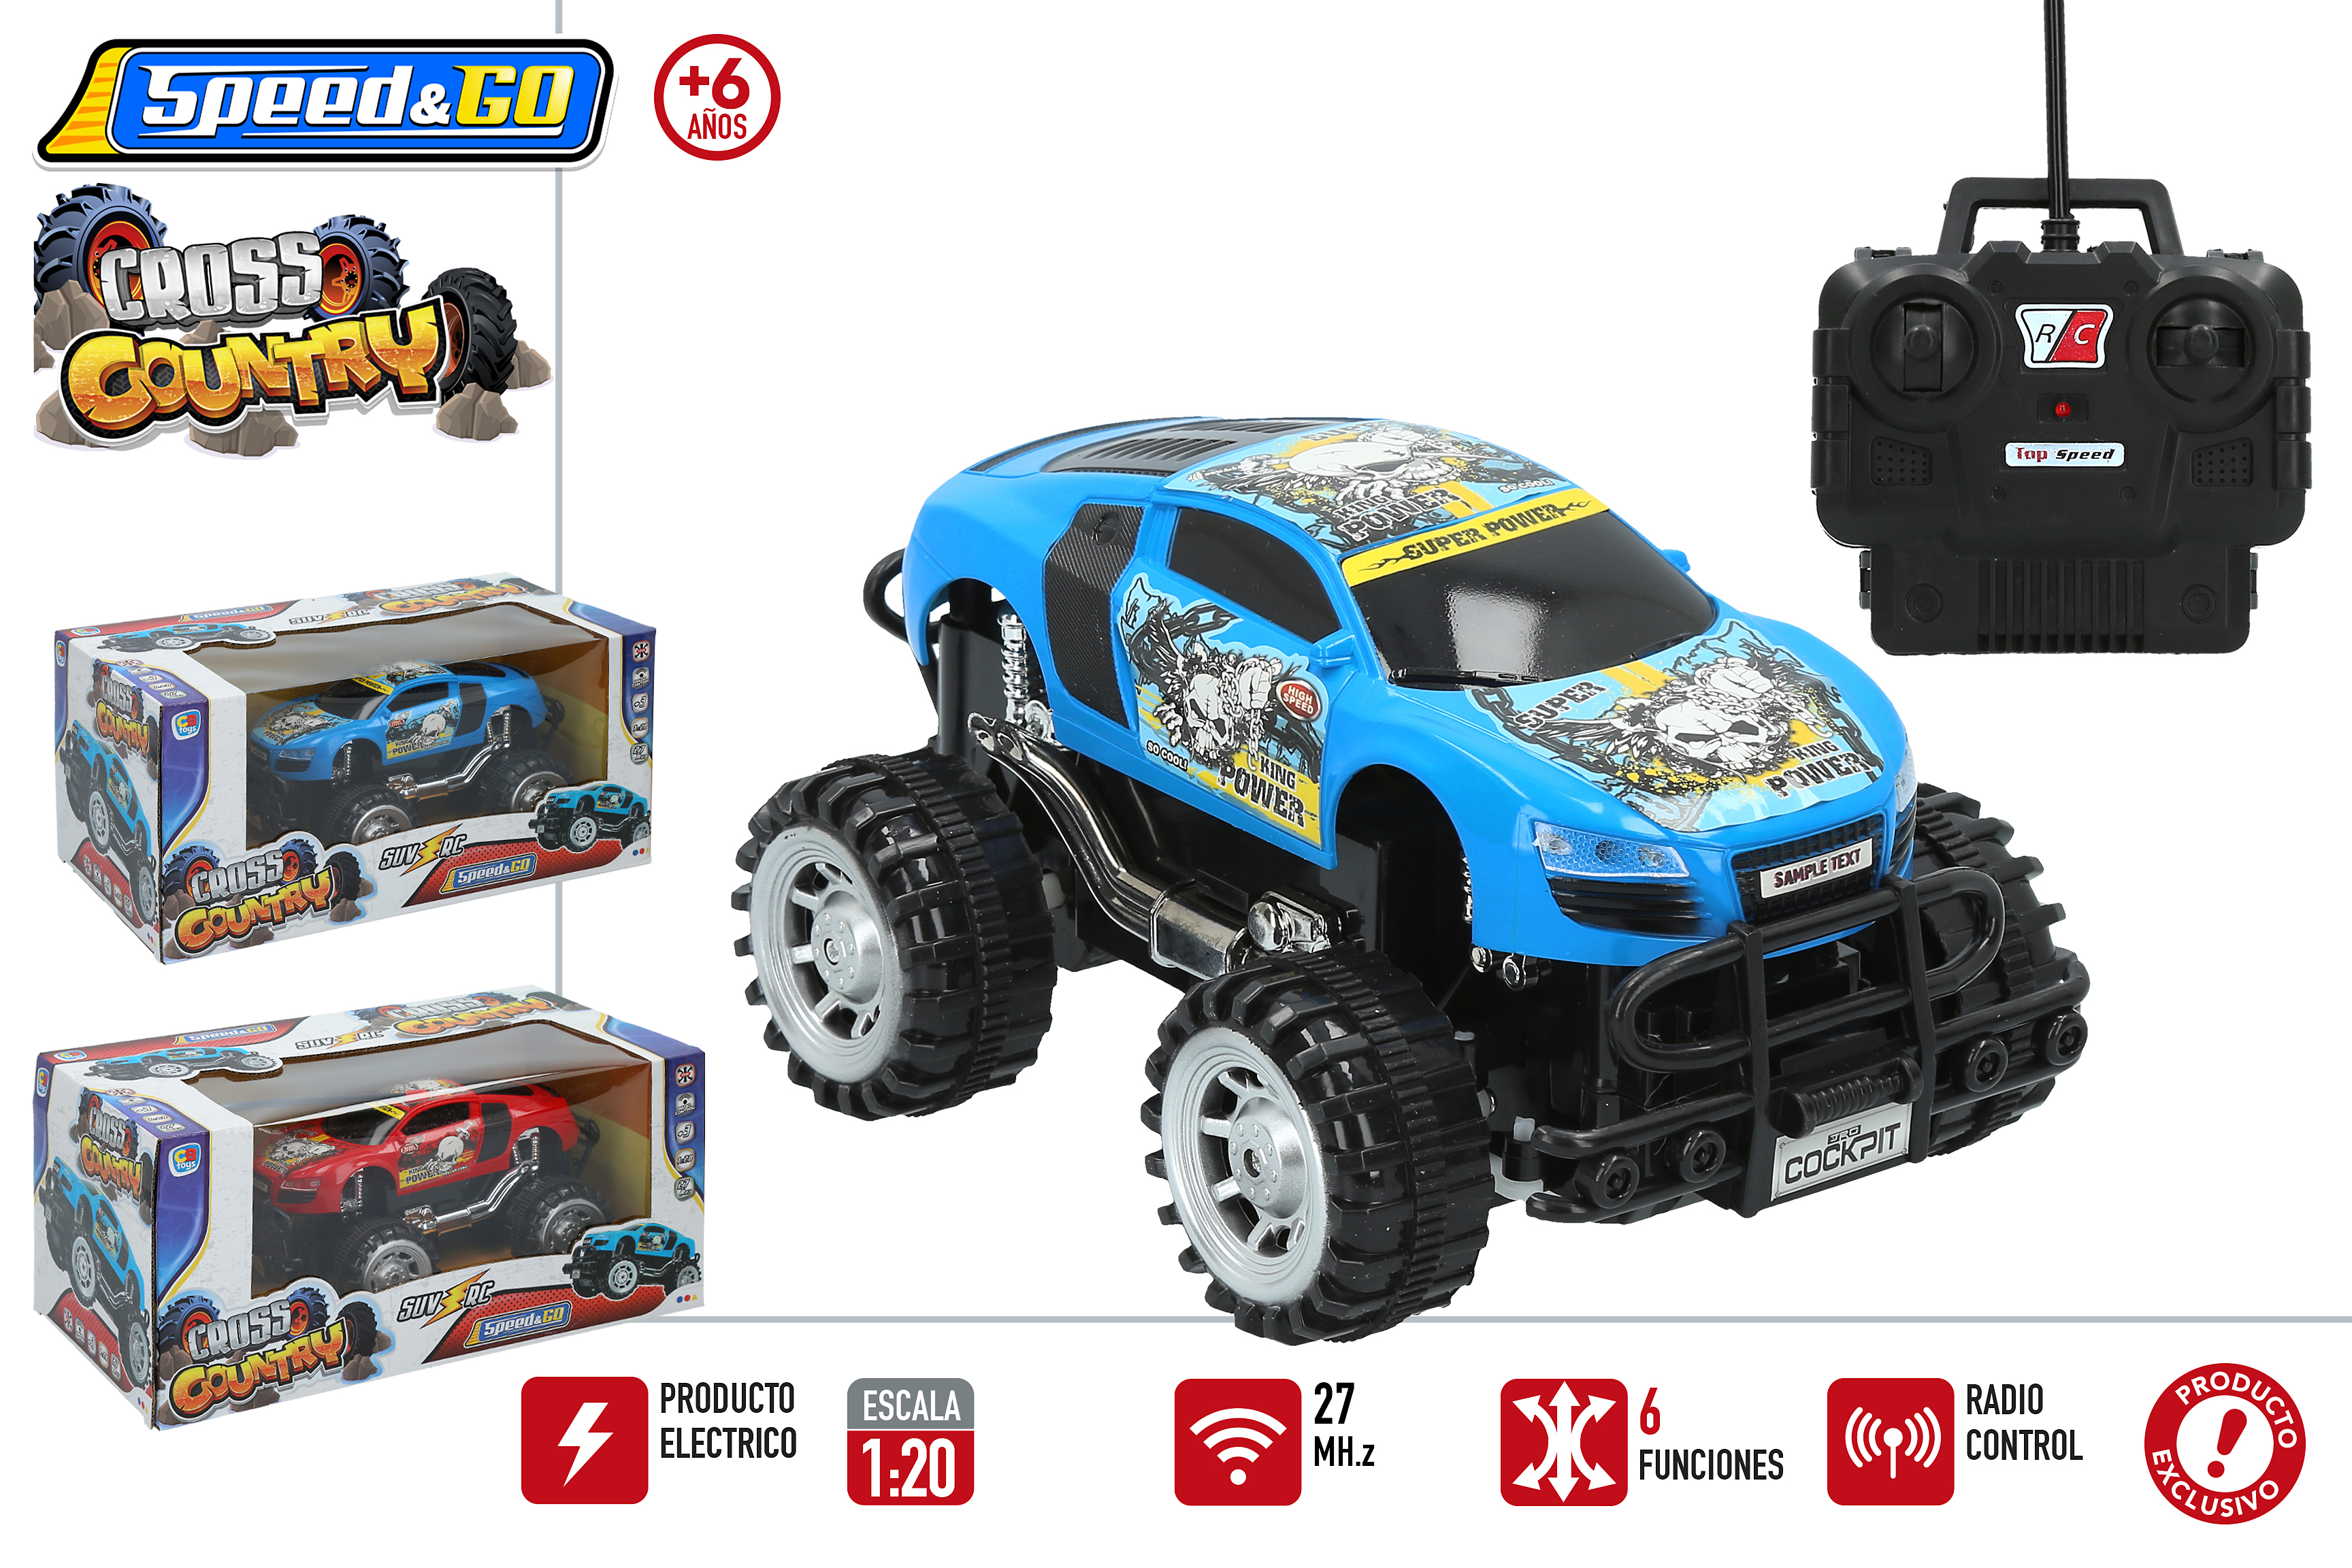 COCHE R/C 1:20 CROSS COUNTRY 43839 - V31619